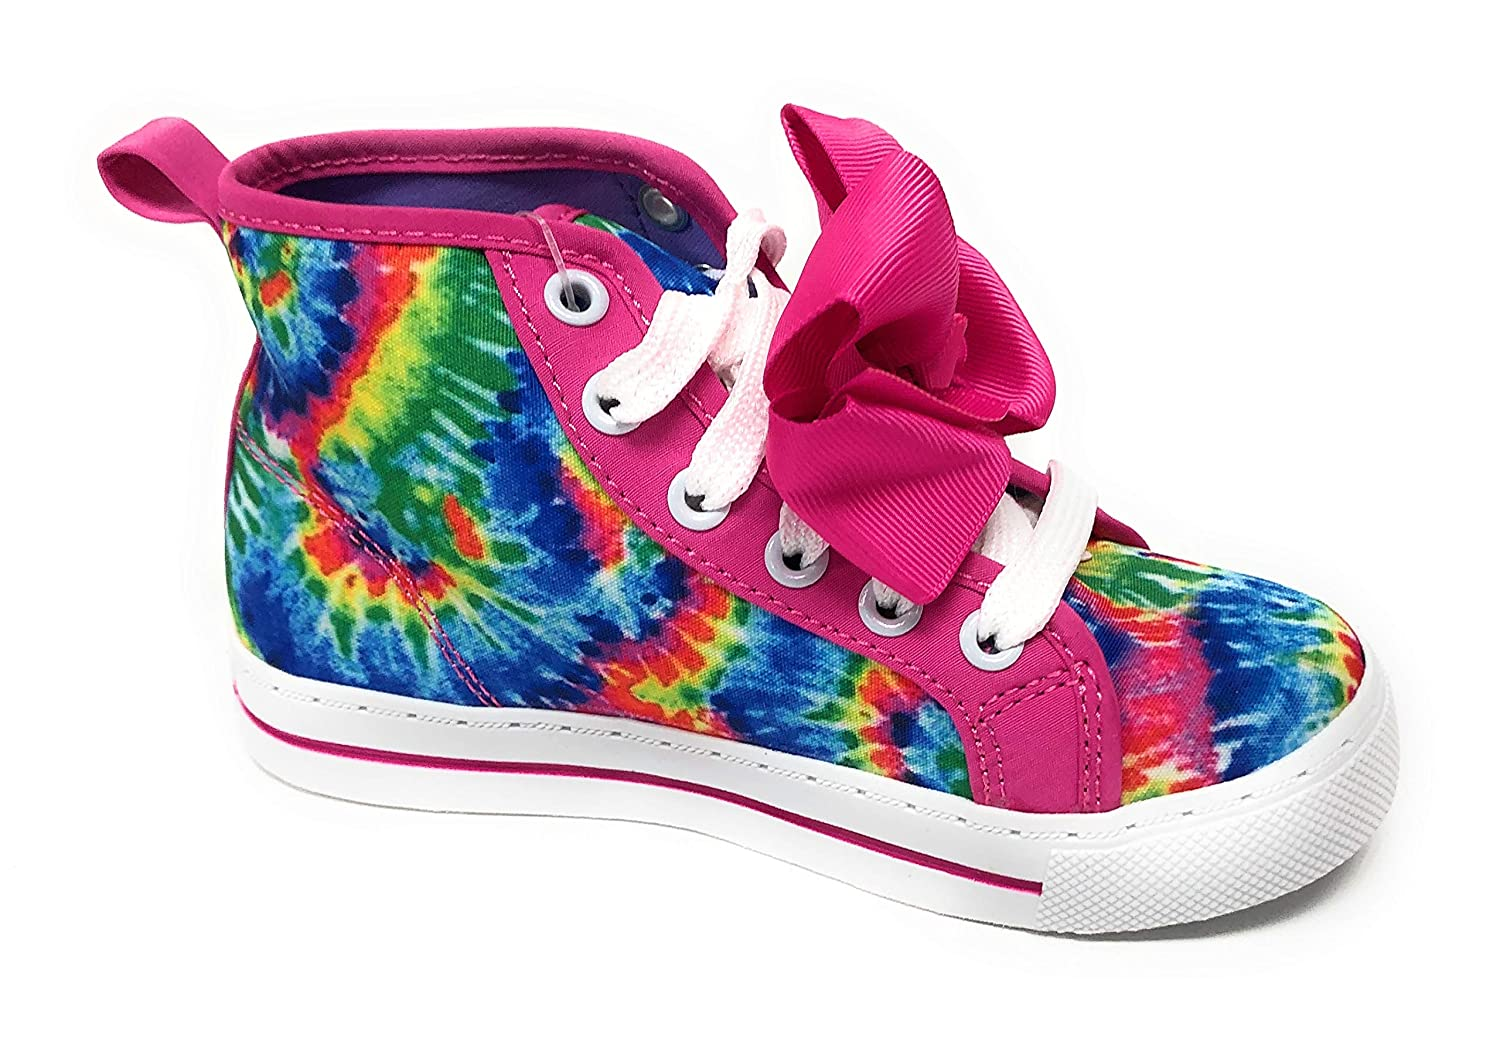 Jojo Siwa Girls Shoes Sneakers High Top Glitter Rainbow Tye Dye with Bow